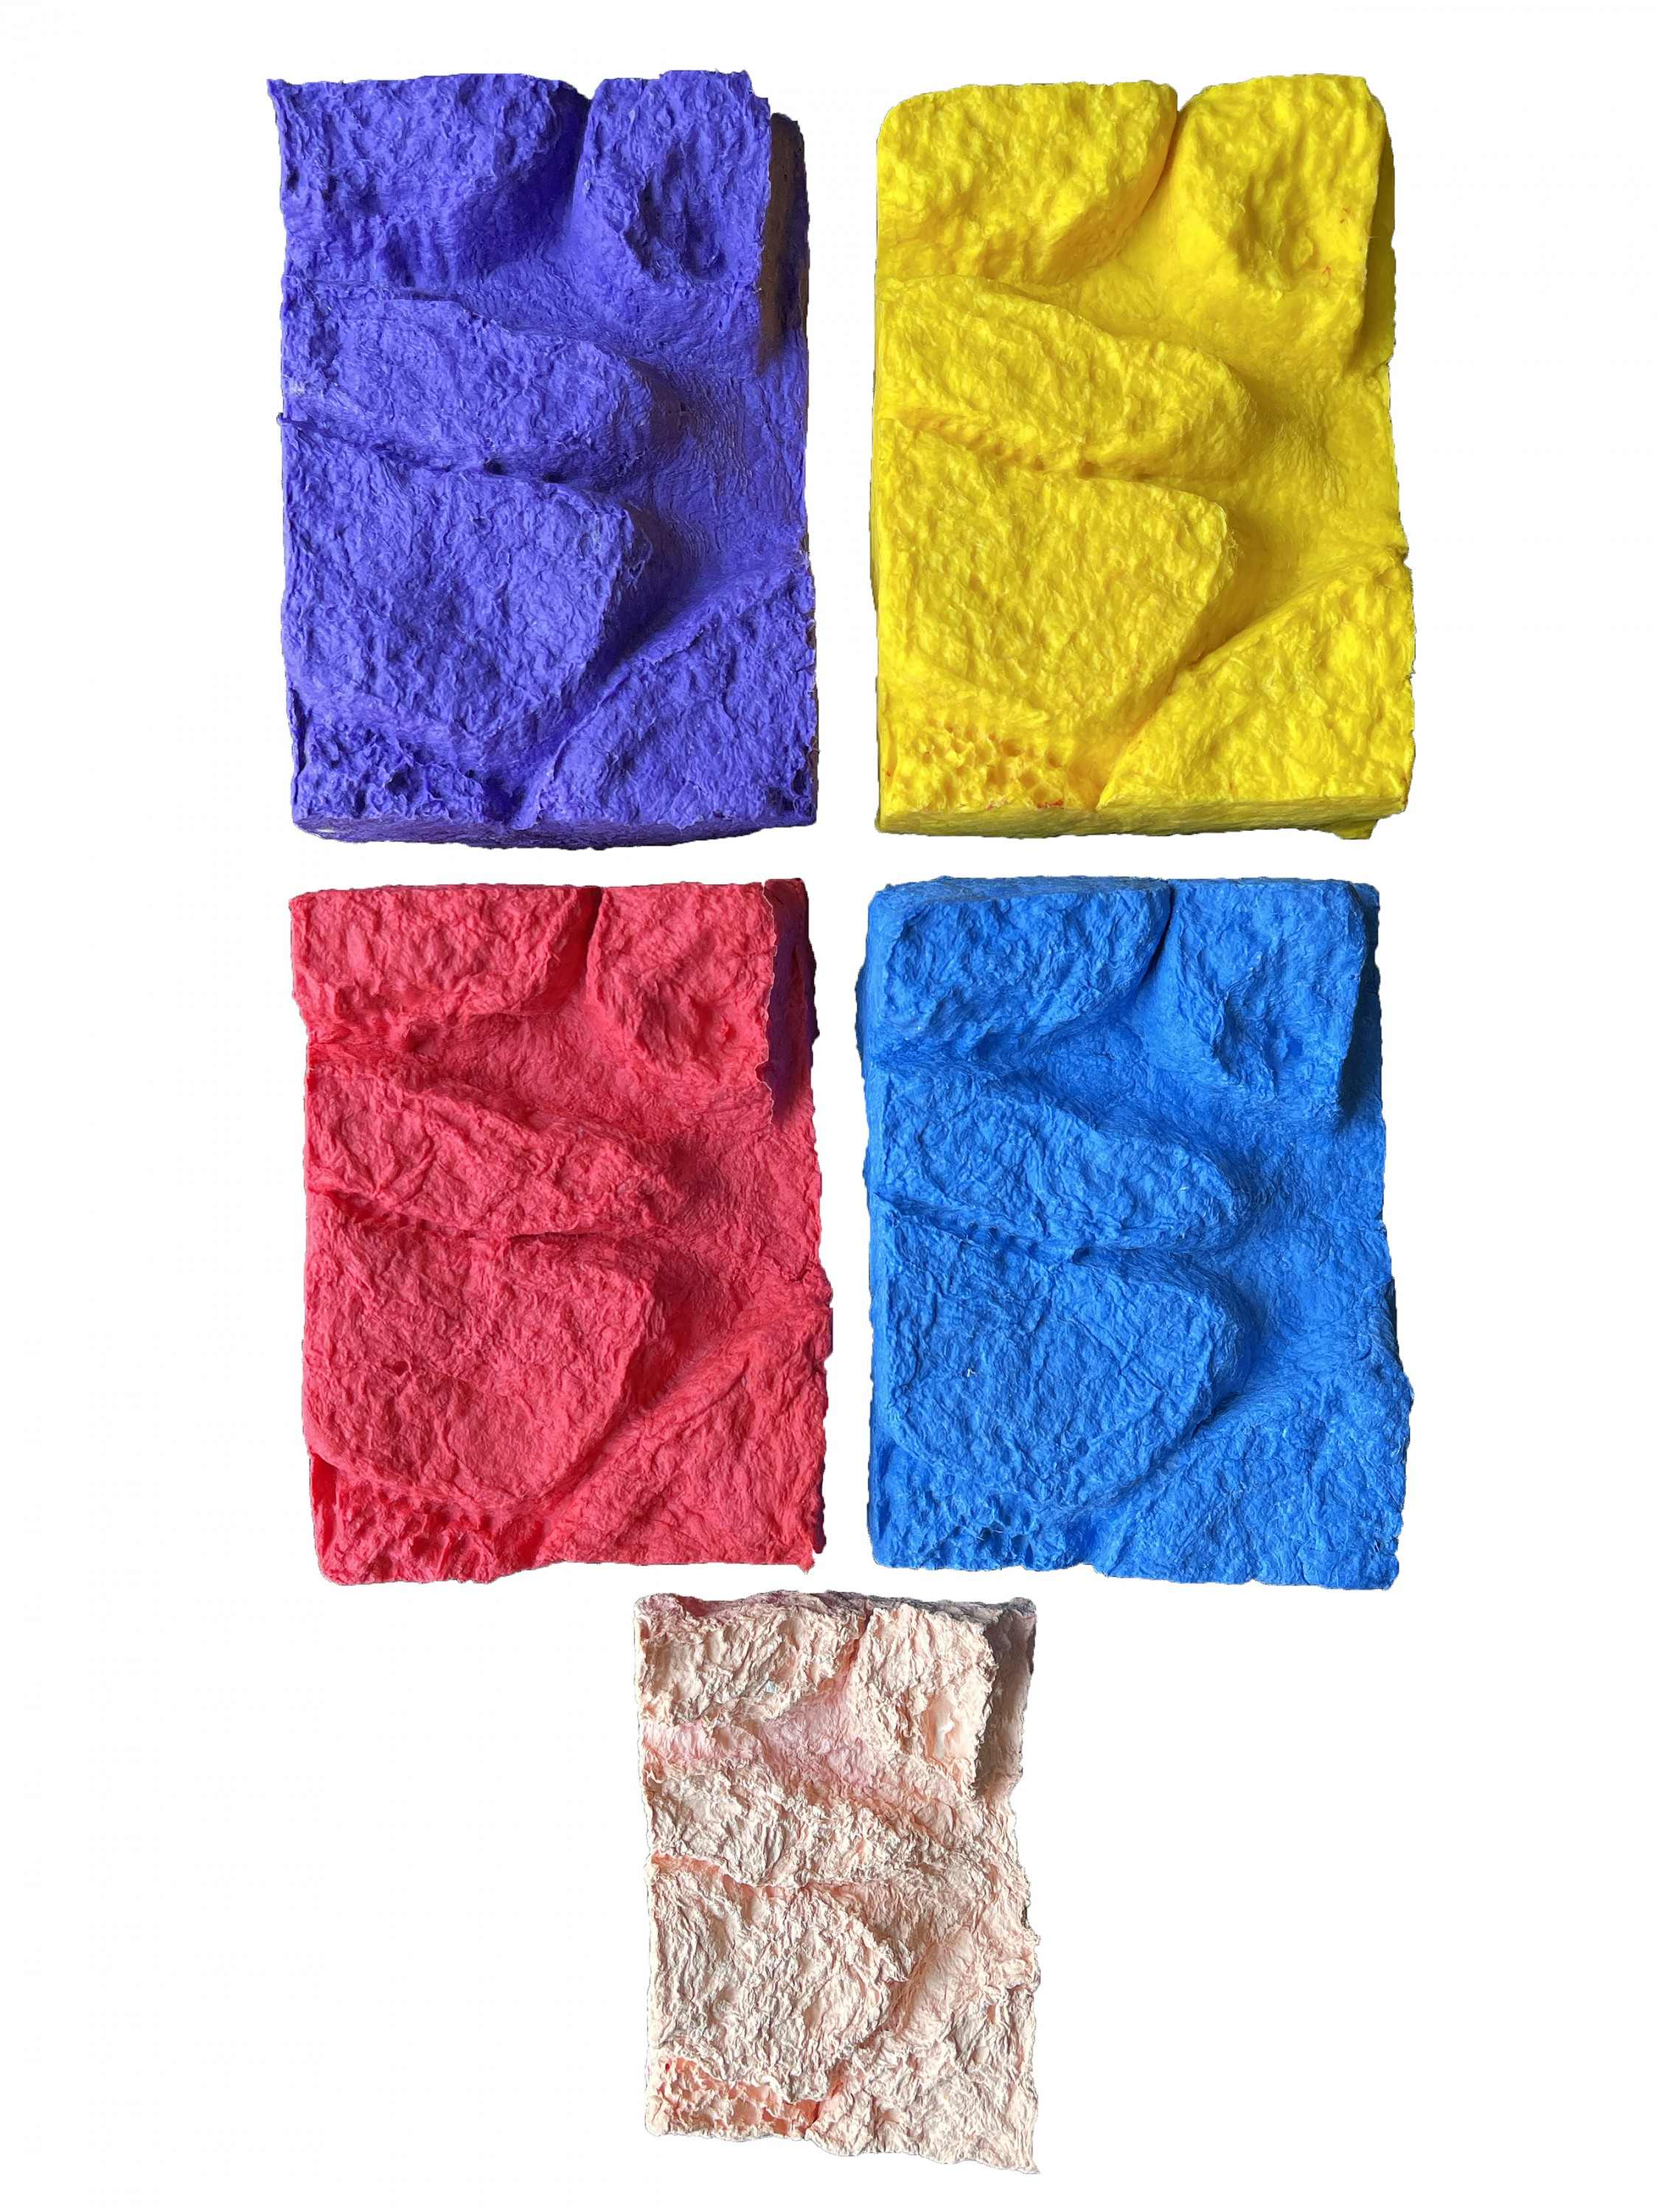 First two images show five (yellow, purple, red, blue, light pink) paper sculptures of a female torso stacked on top of each other. Second image shows the five (yellow, purple, red, blue, light pink) paper sculptures lined up showing each individual piece